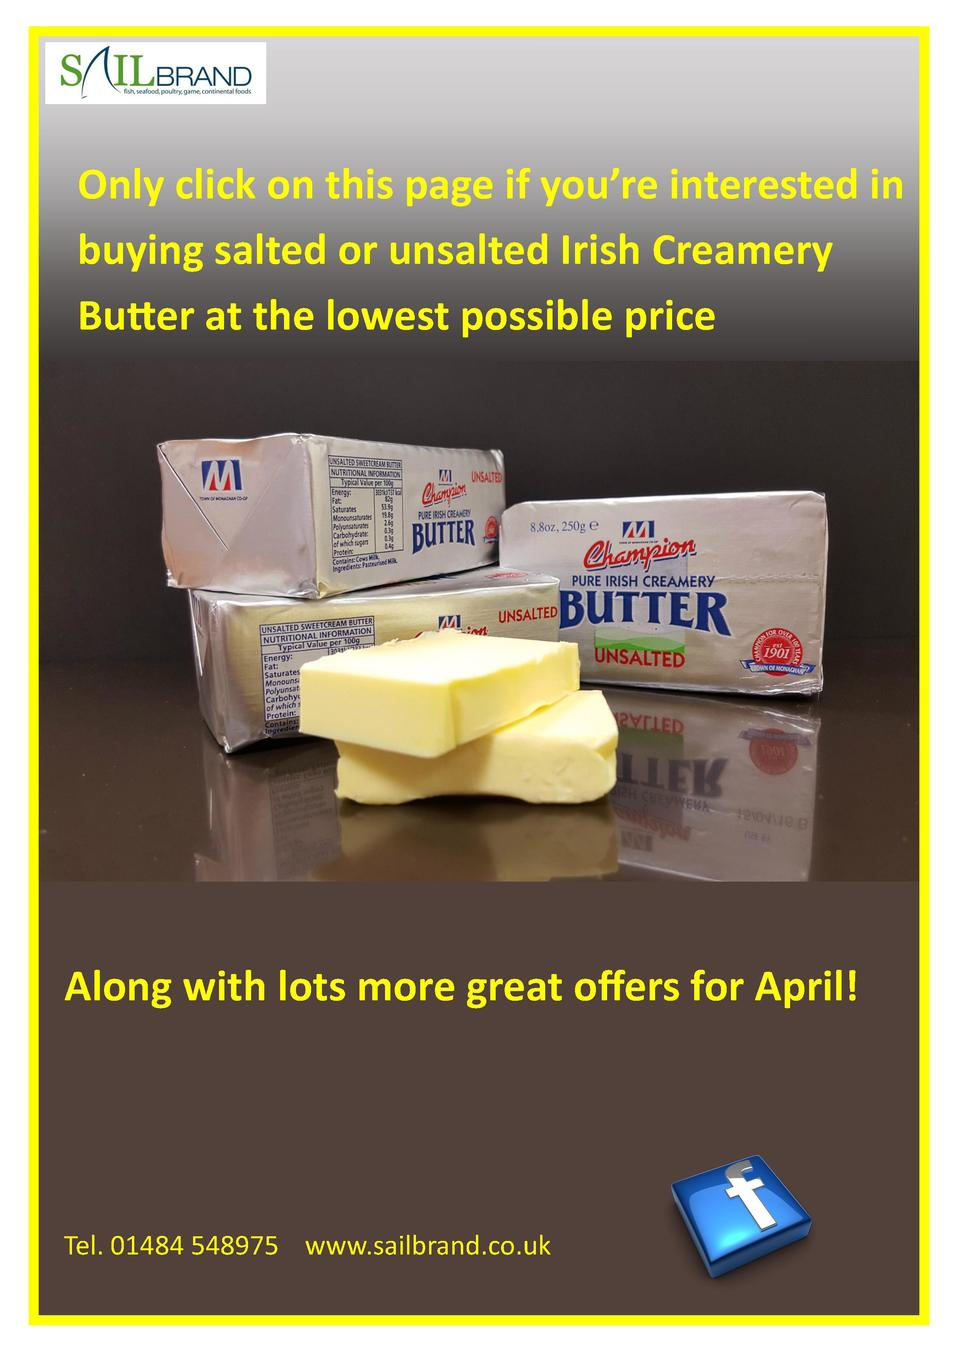 a  Only click on this page if you   re interested in buying salted or unsalted Irish Creamery Butter at the lowest possibl...